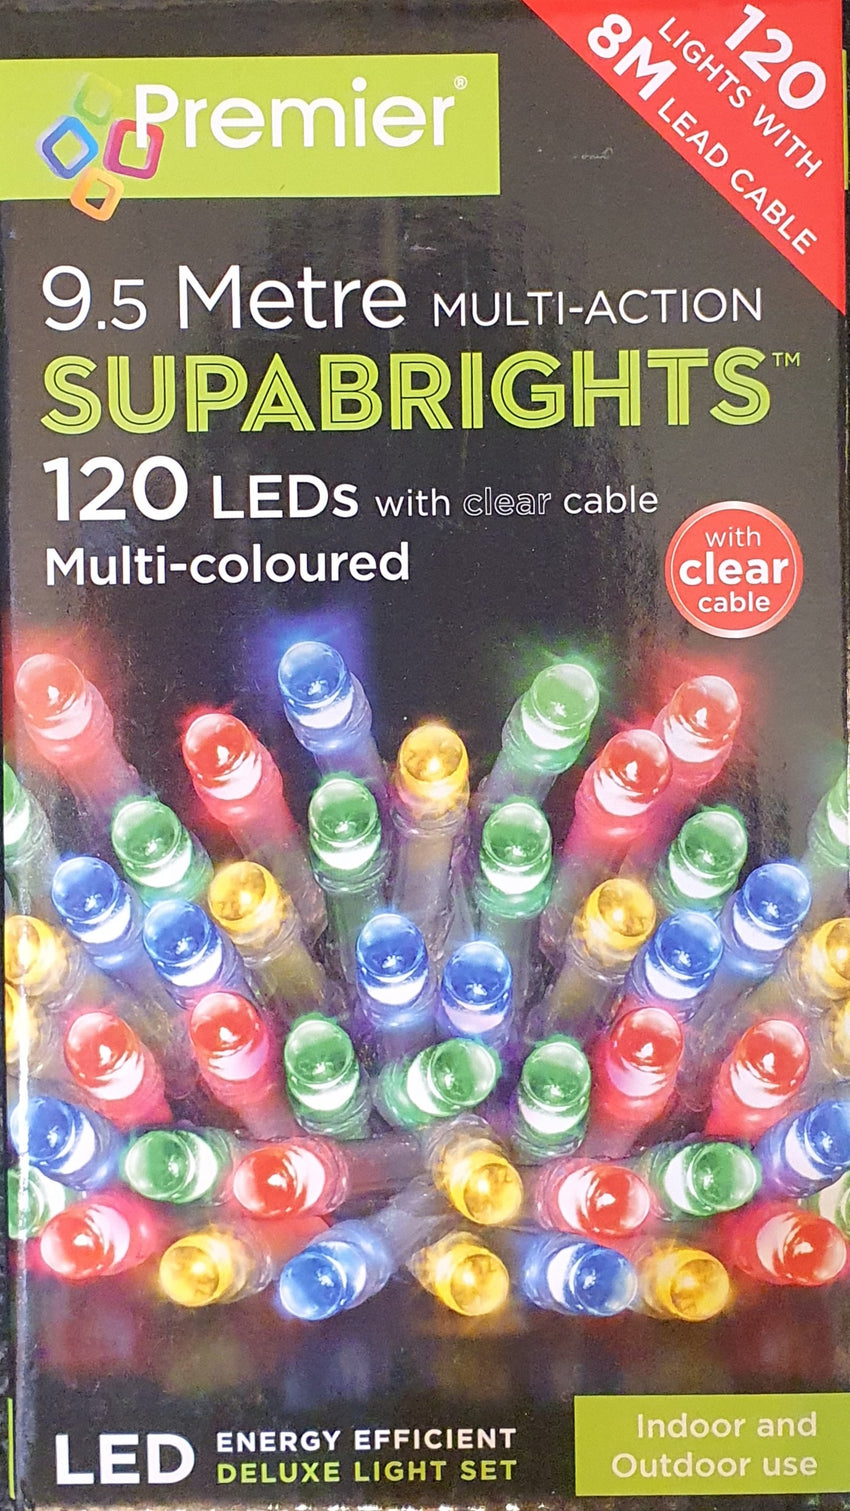 Premier 9.5 Metre Multi-Colored Multi-Action Lights